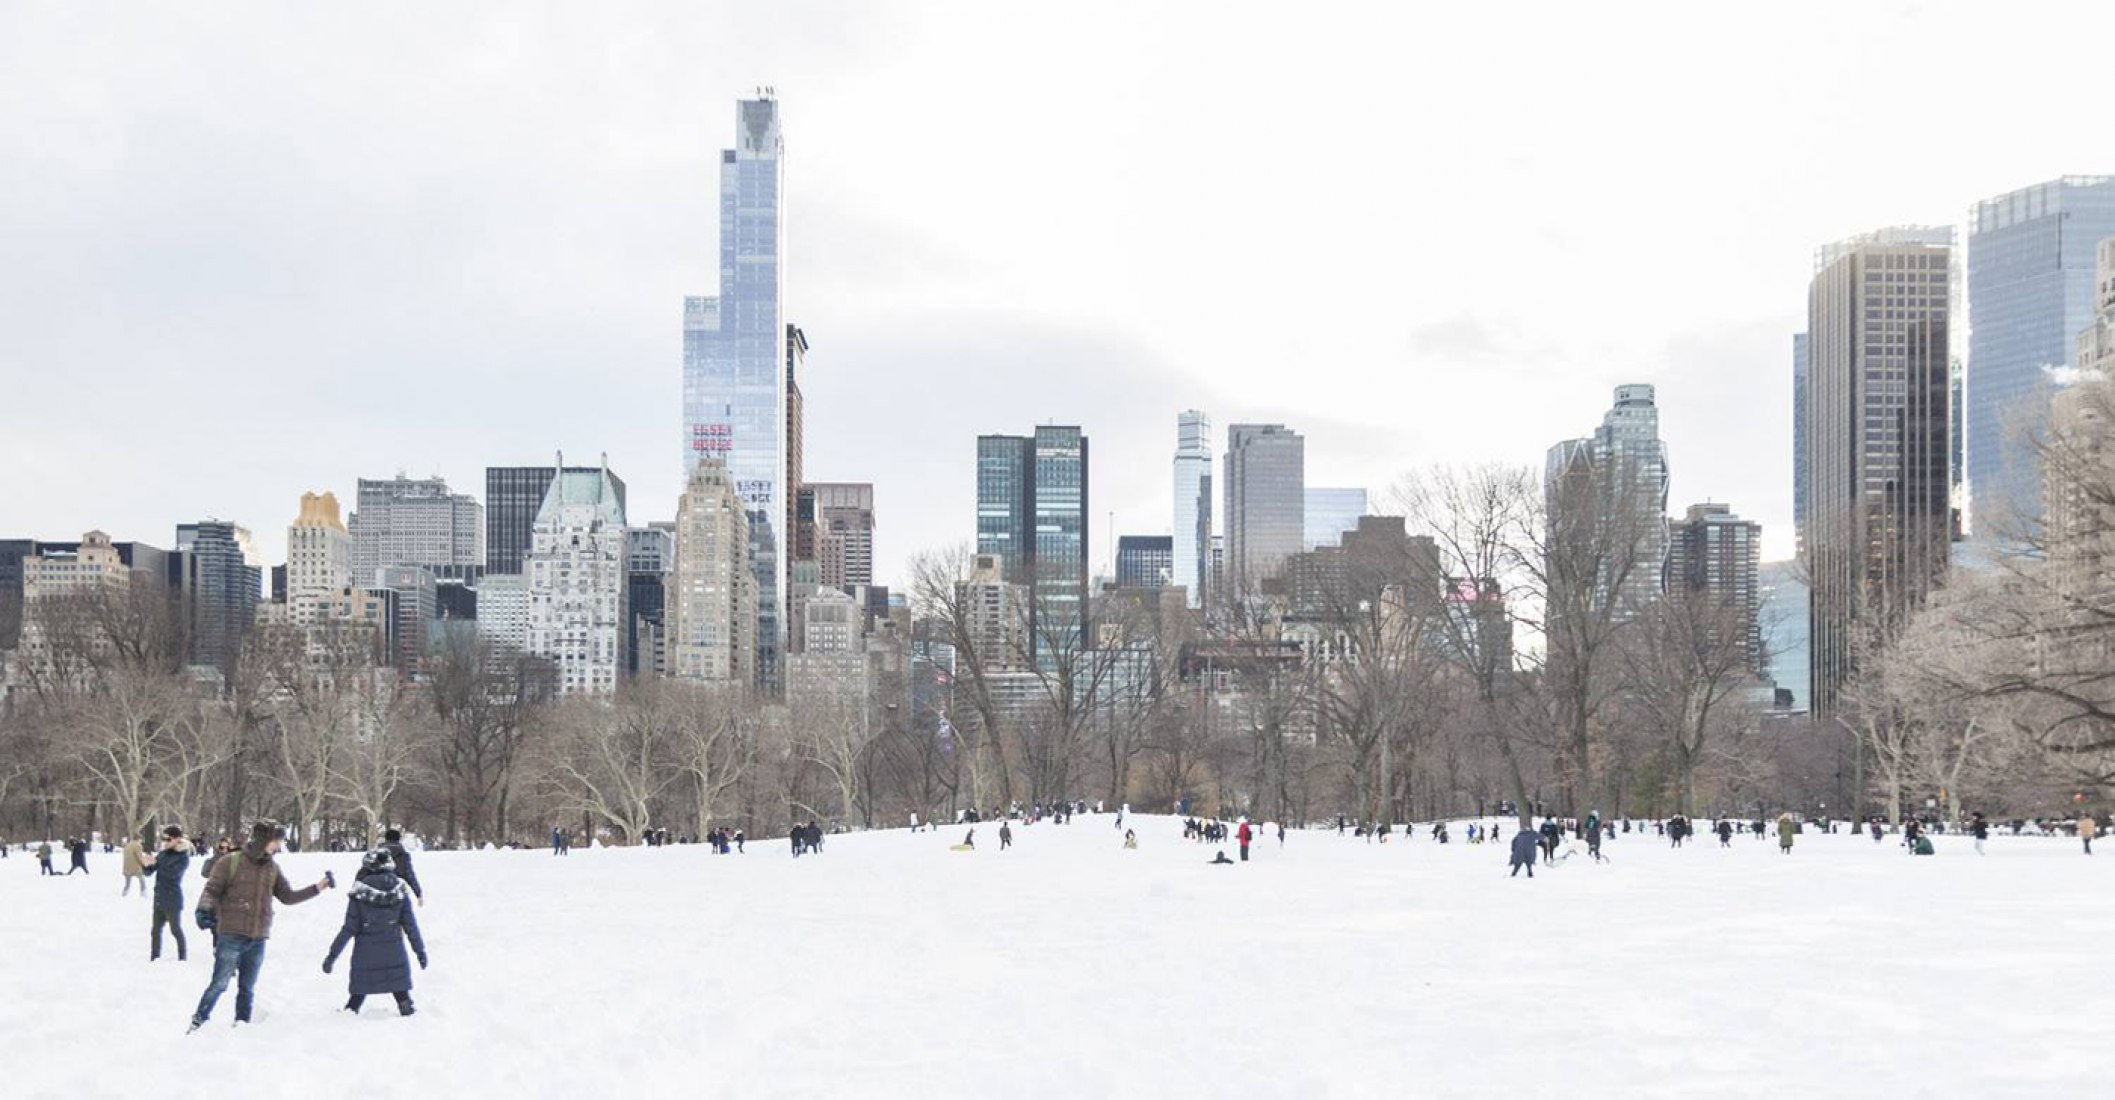 Central Park. New York covered in snow. Photography © Montse Zamorano